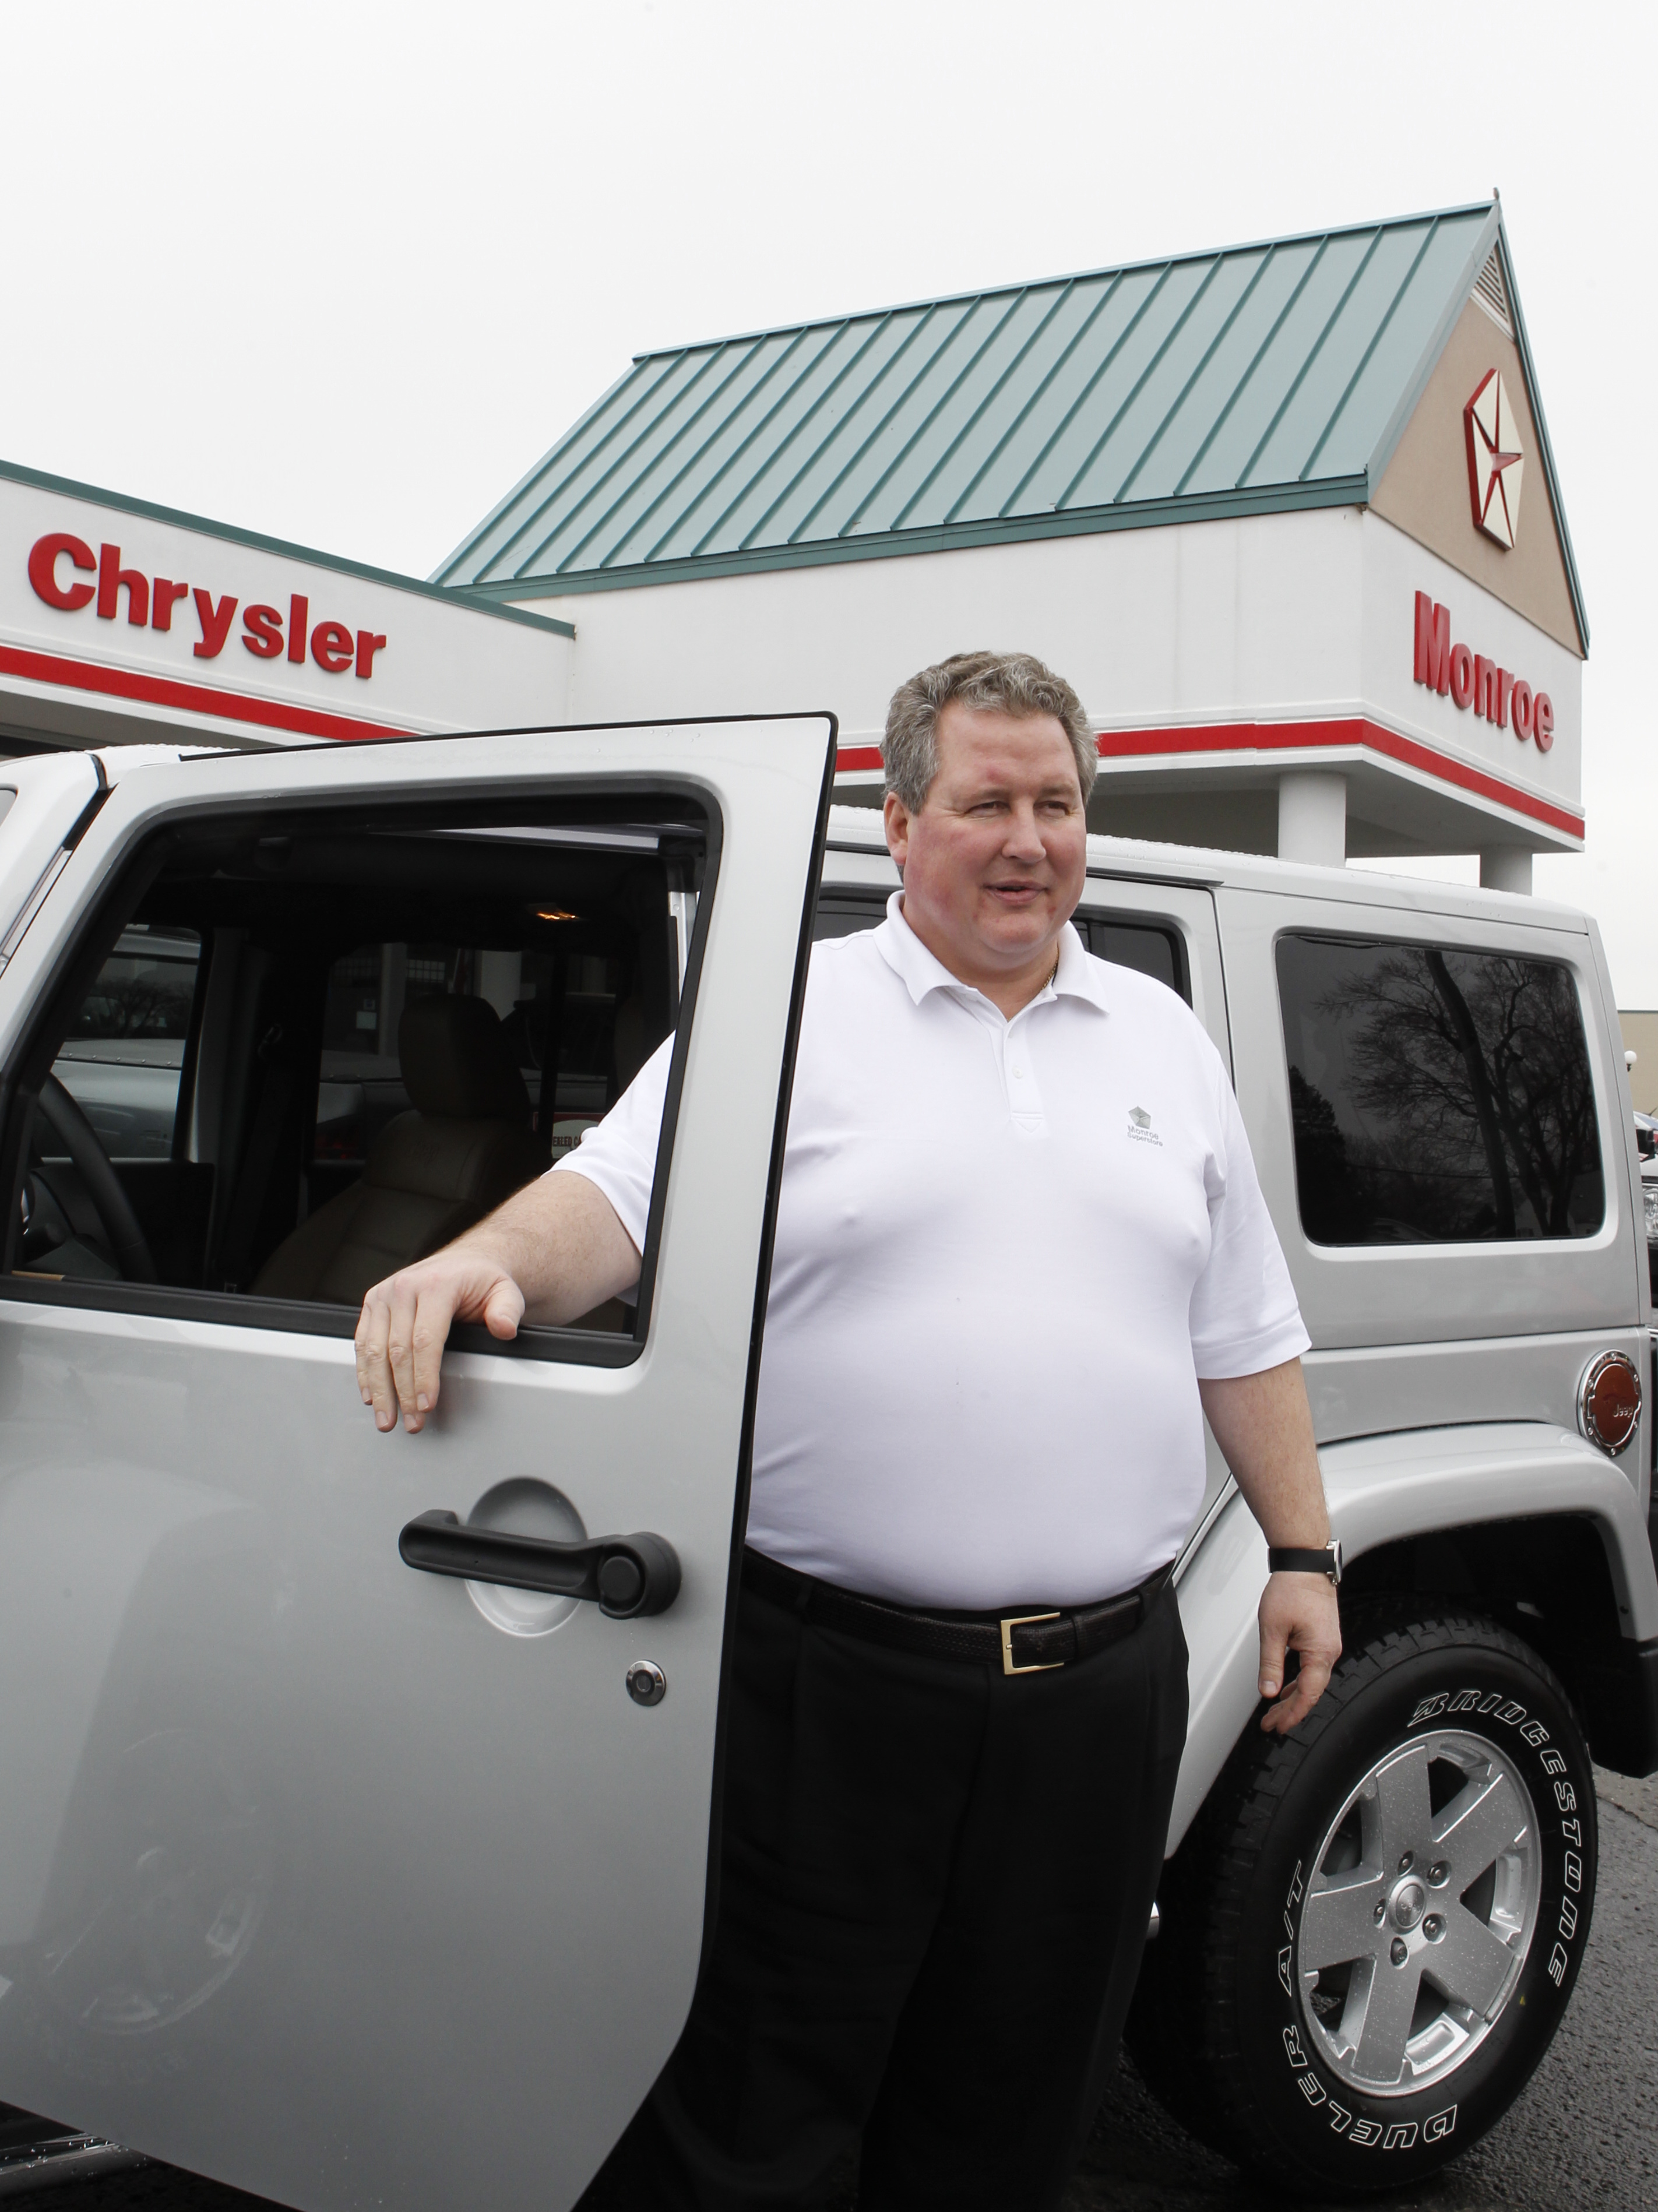 Rivals' vehicles to be eligible for Chrysler certified ...